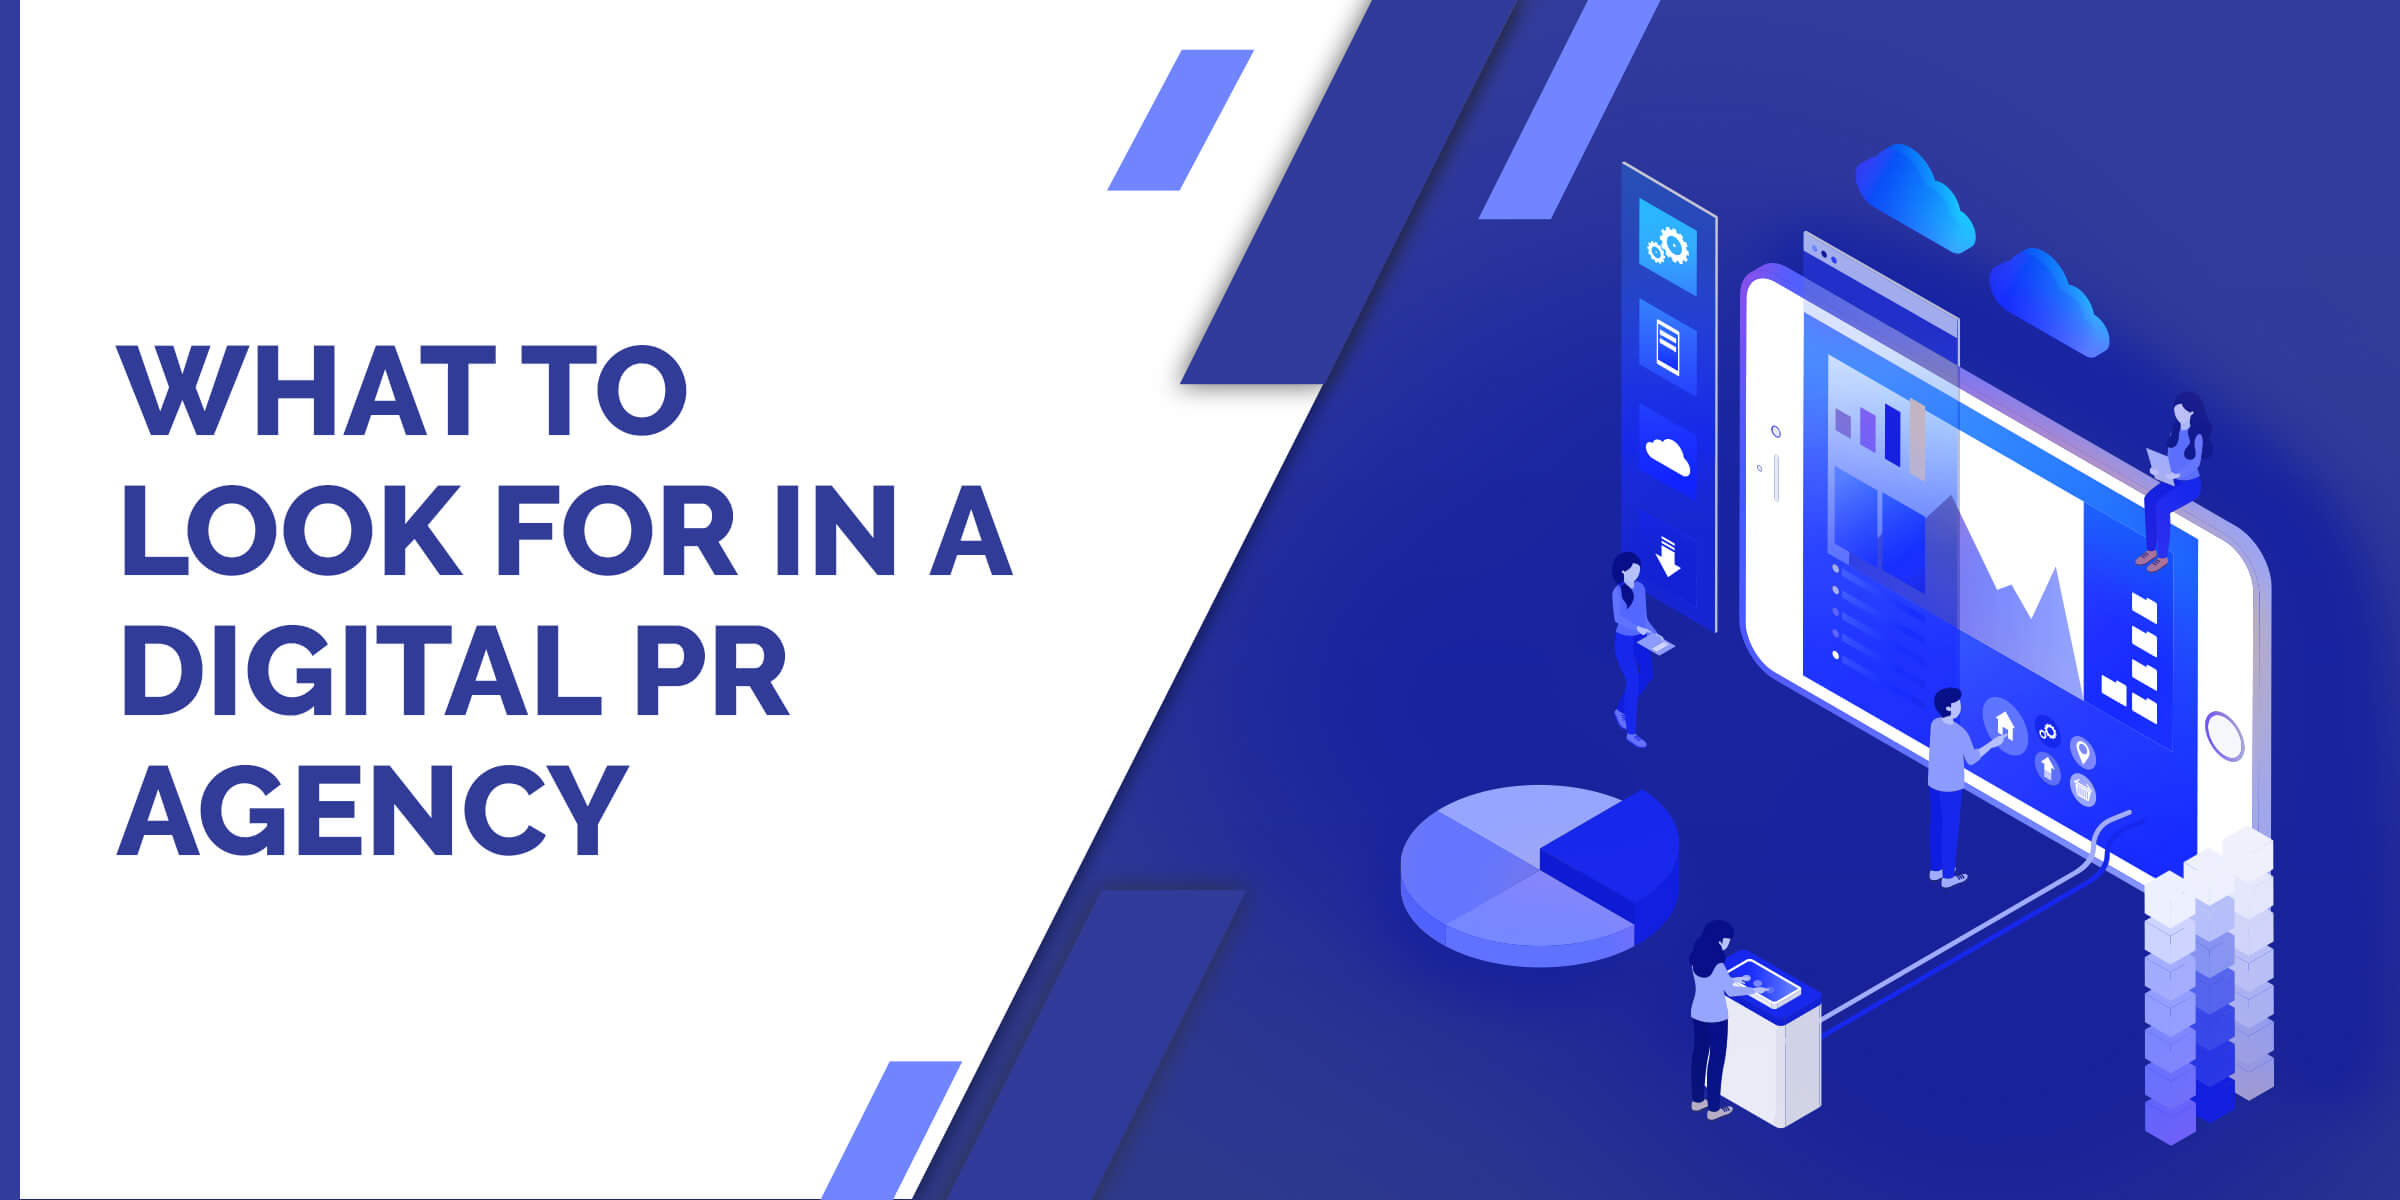 What to Look for in a Digital PR Agency